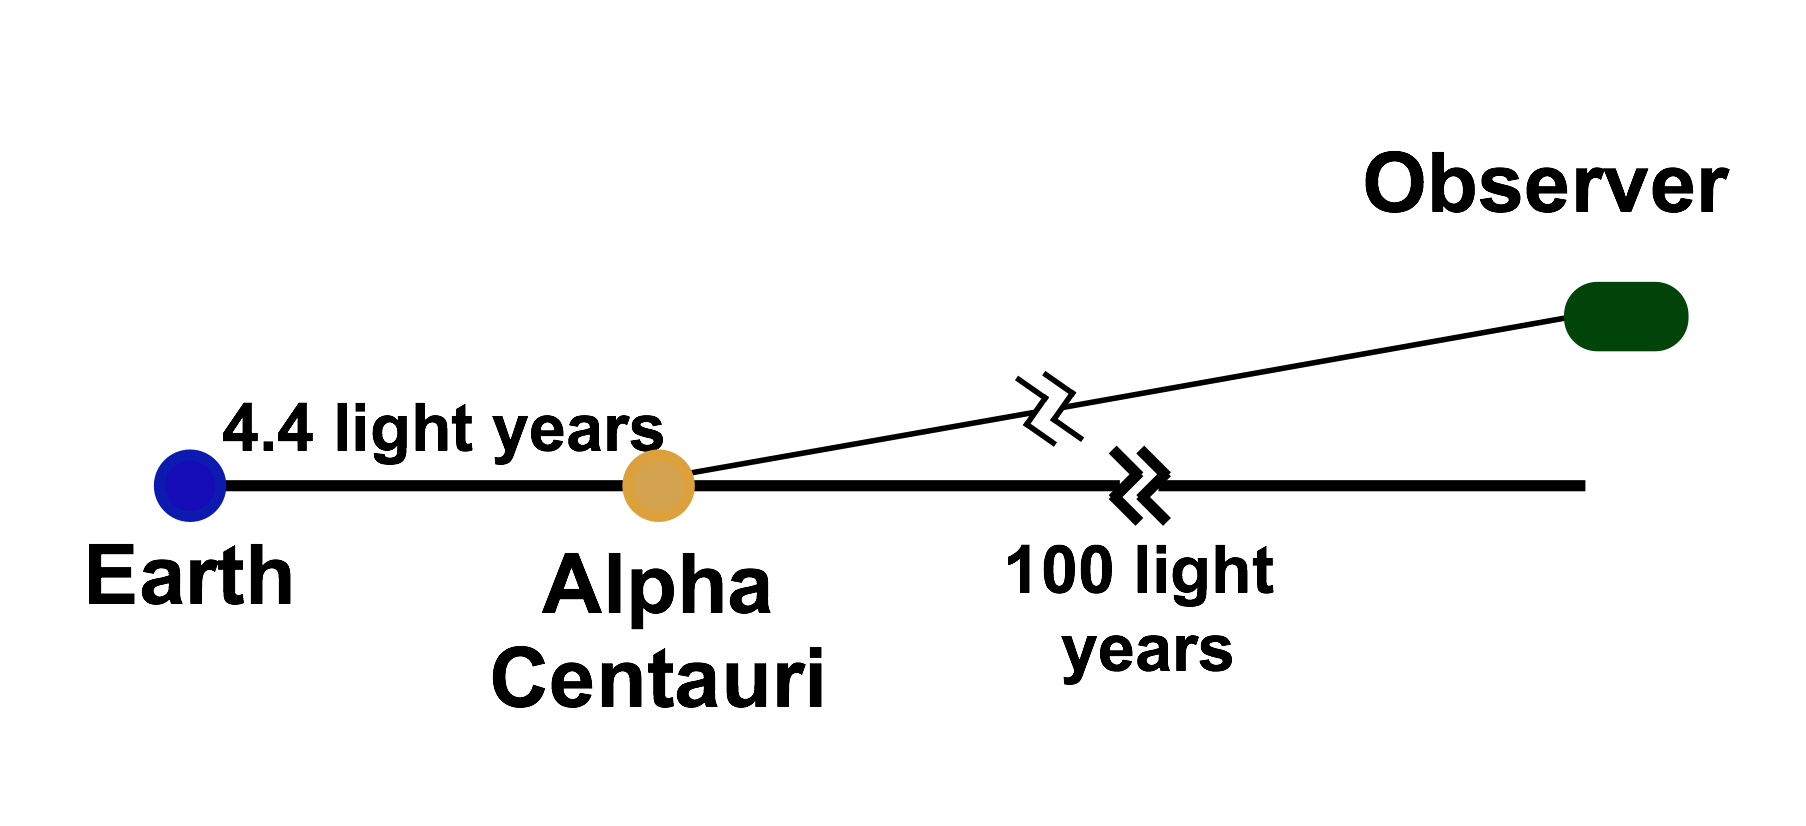 Here, the observer is 100 light years from Alpha Centauri but at a 20º angle from the line between Earth and the star.